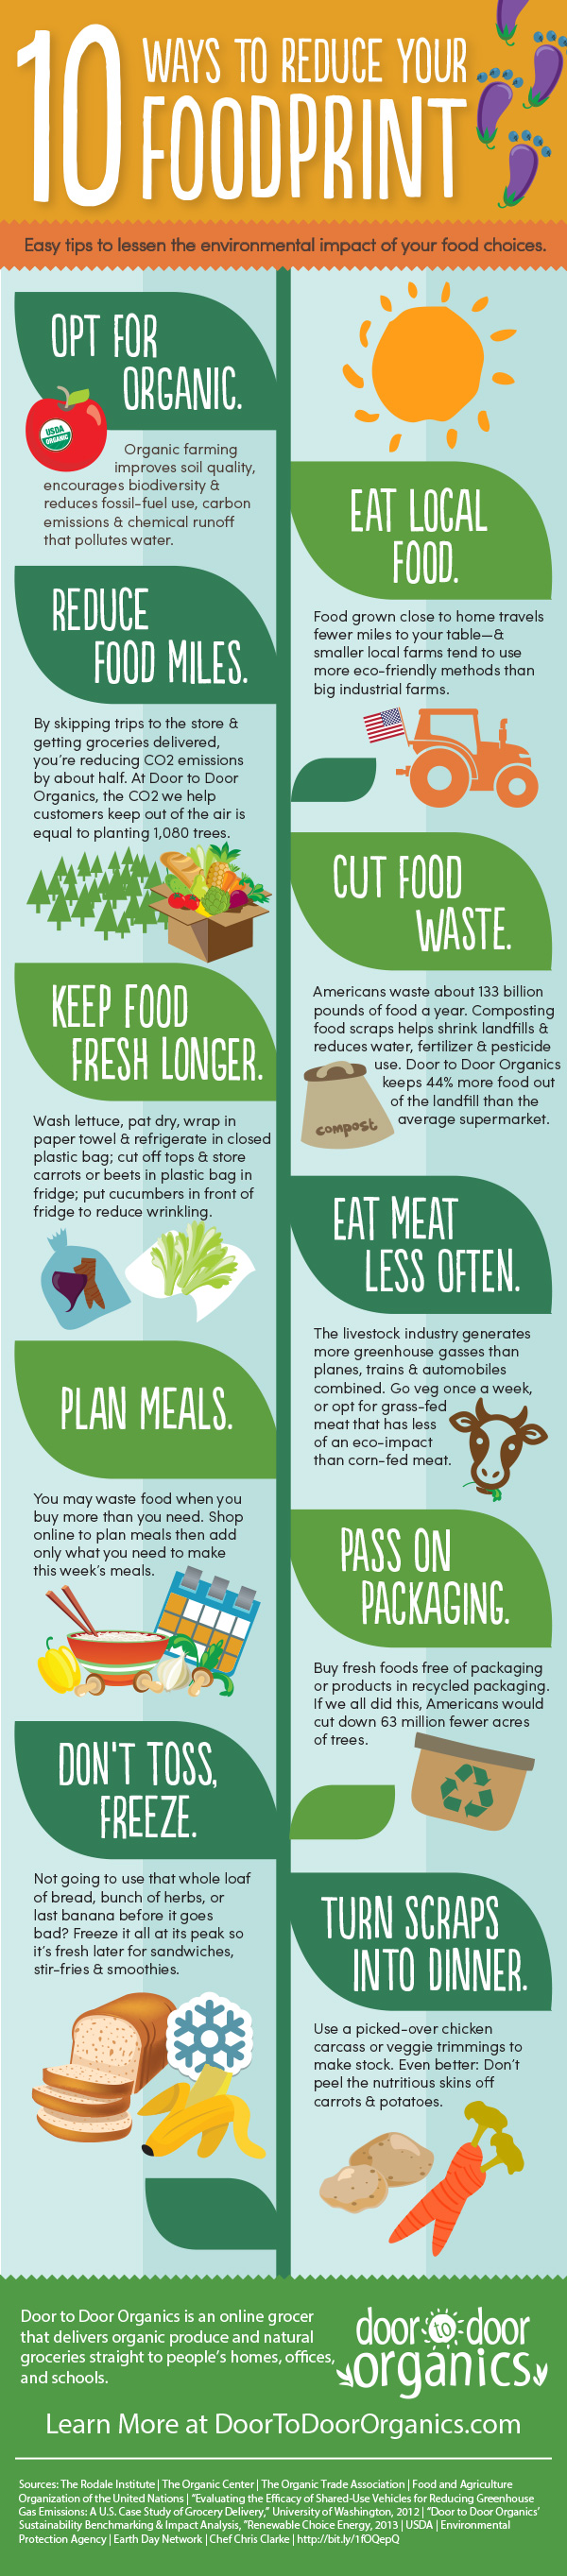 steps to reduce your carbon footprint